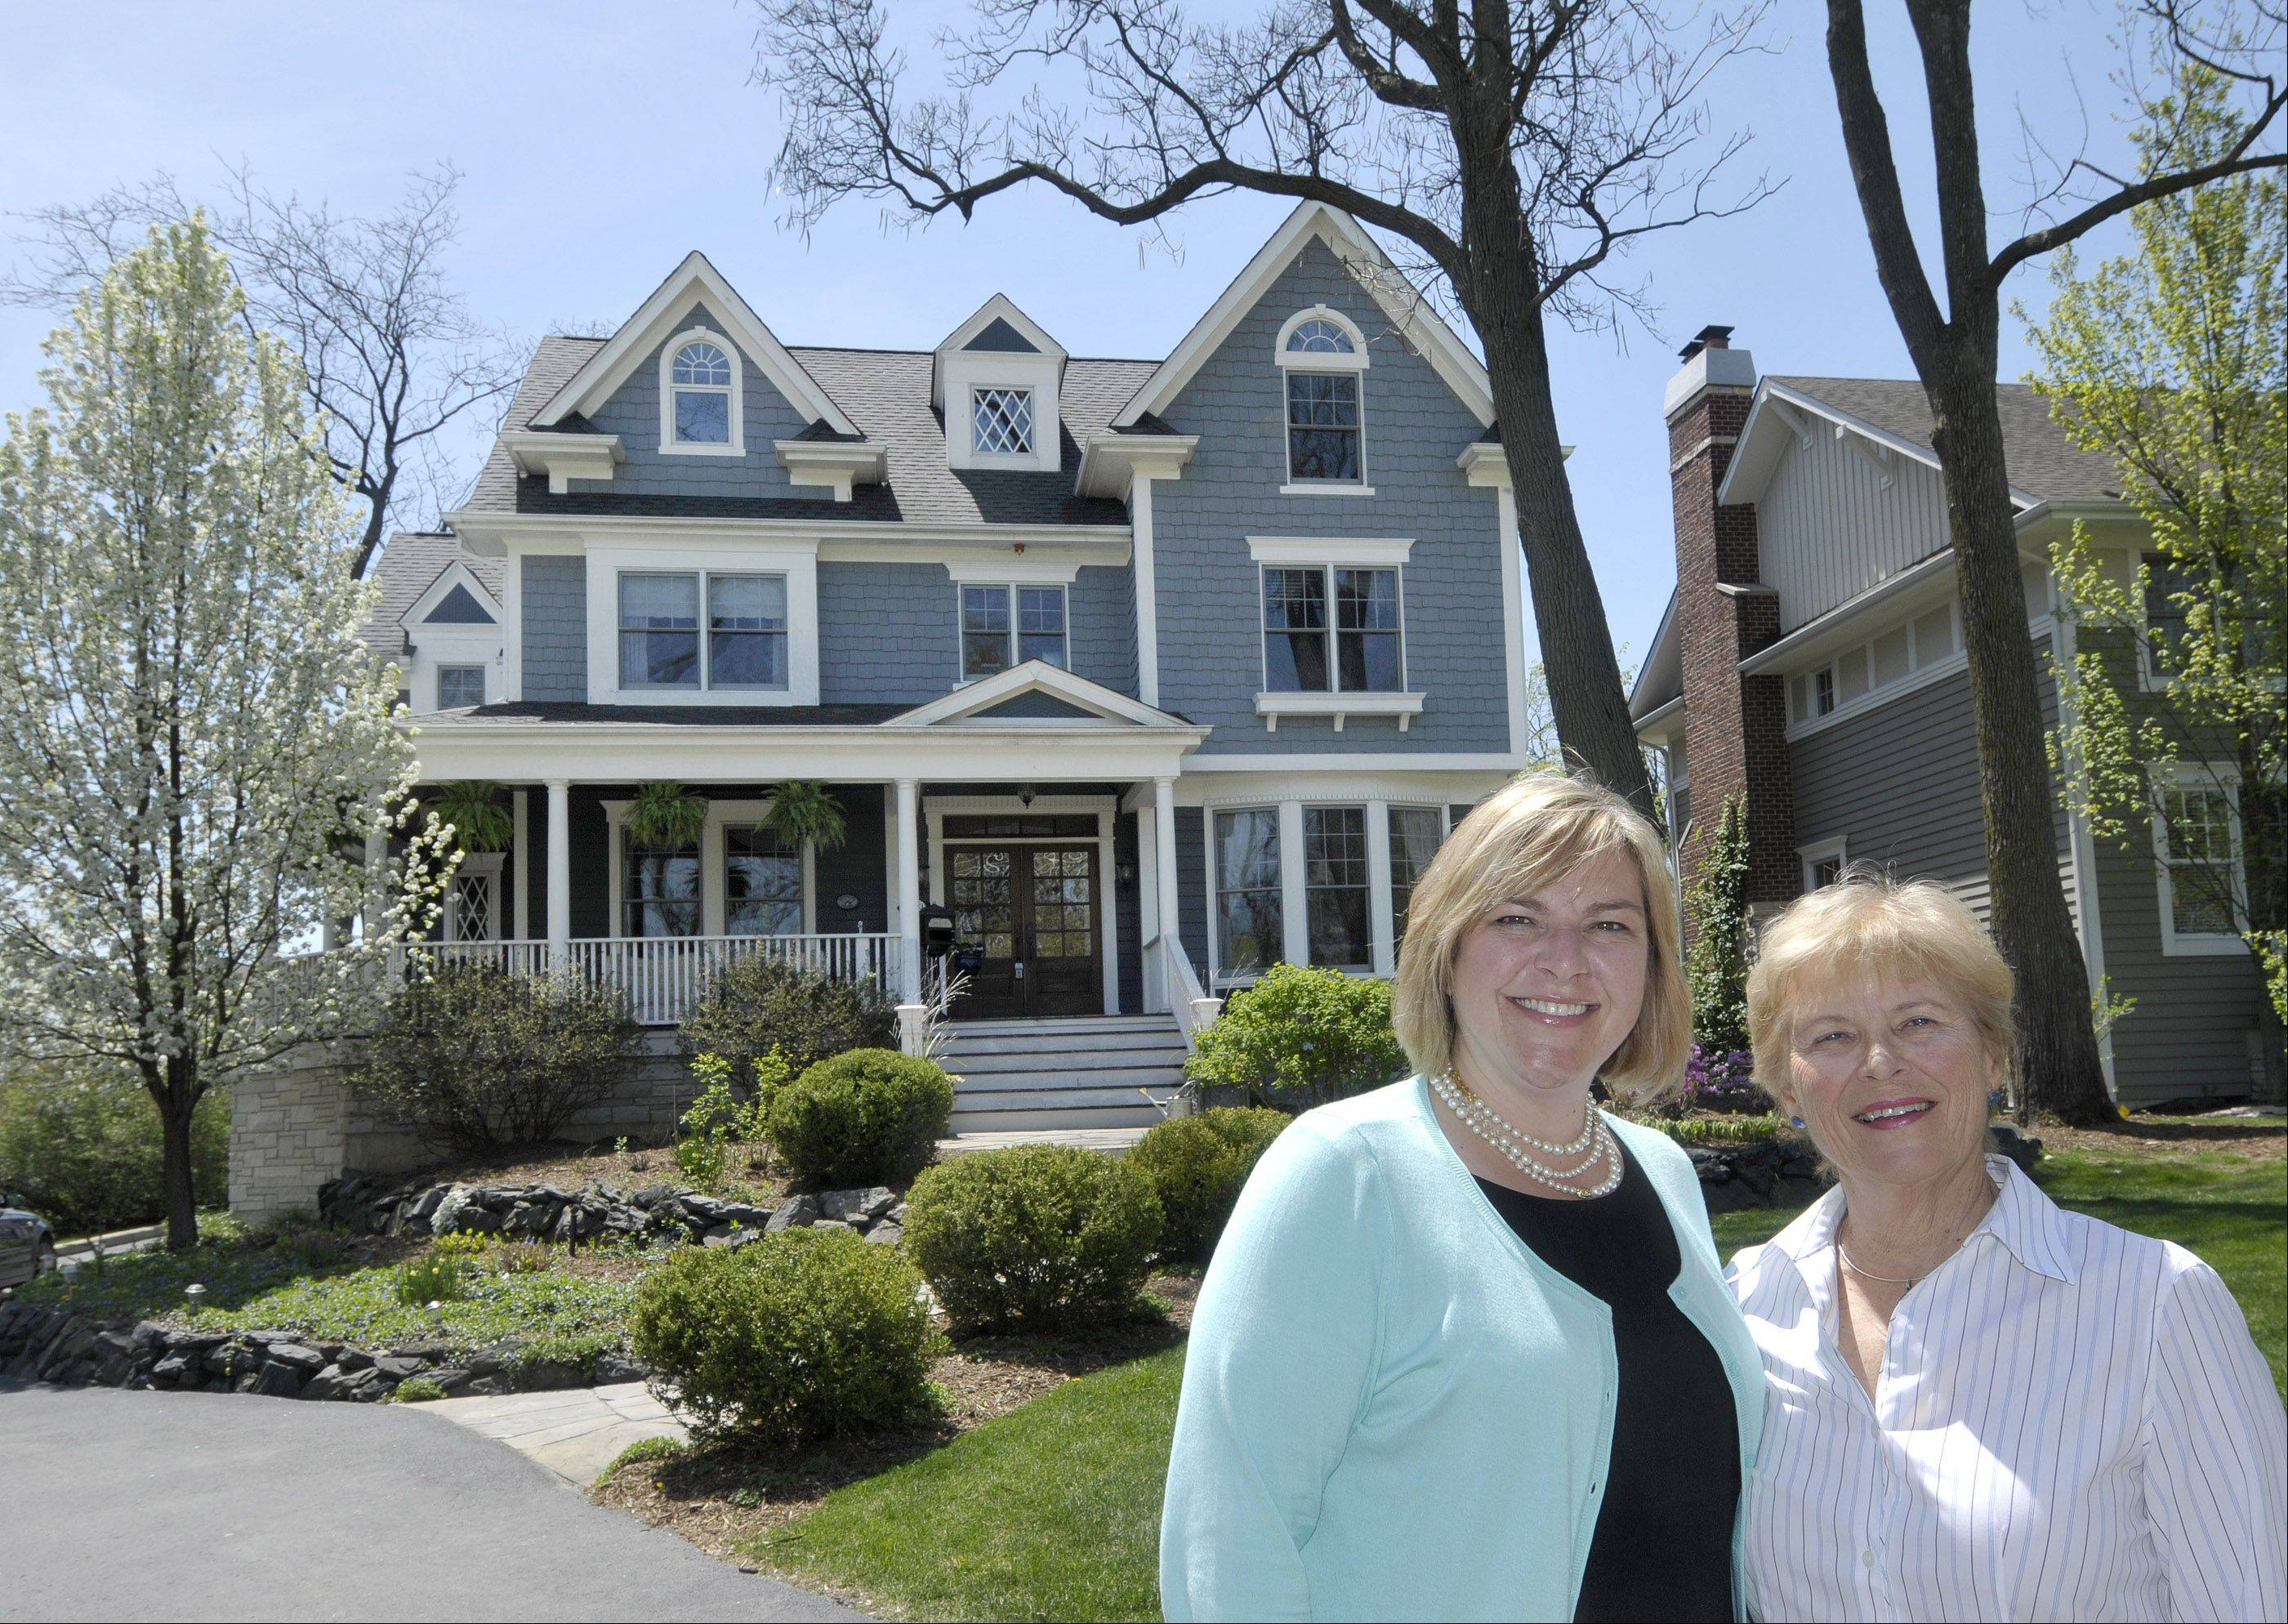 Beth Gorz, left, and her mother Karen Gorz sell real estate together for Keller Williams Premiere Properties in Glen Ellyn.